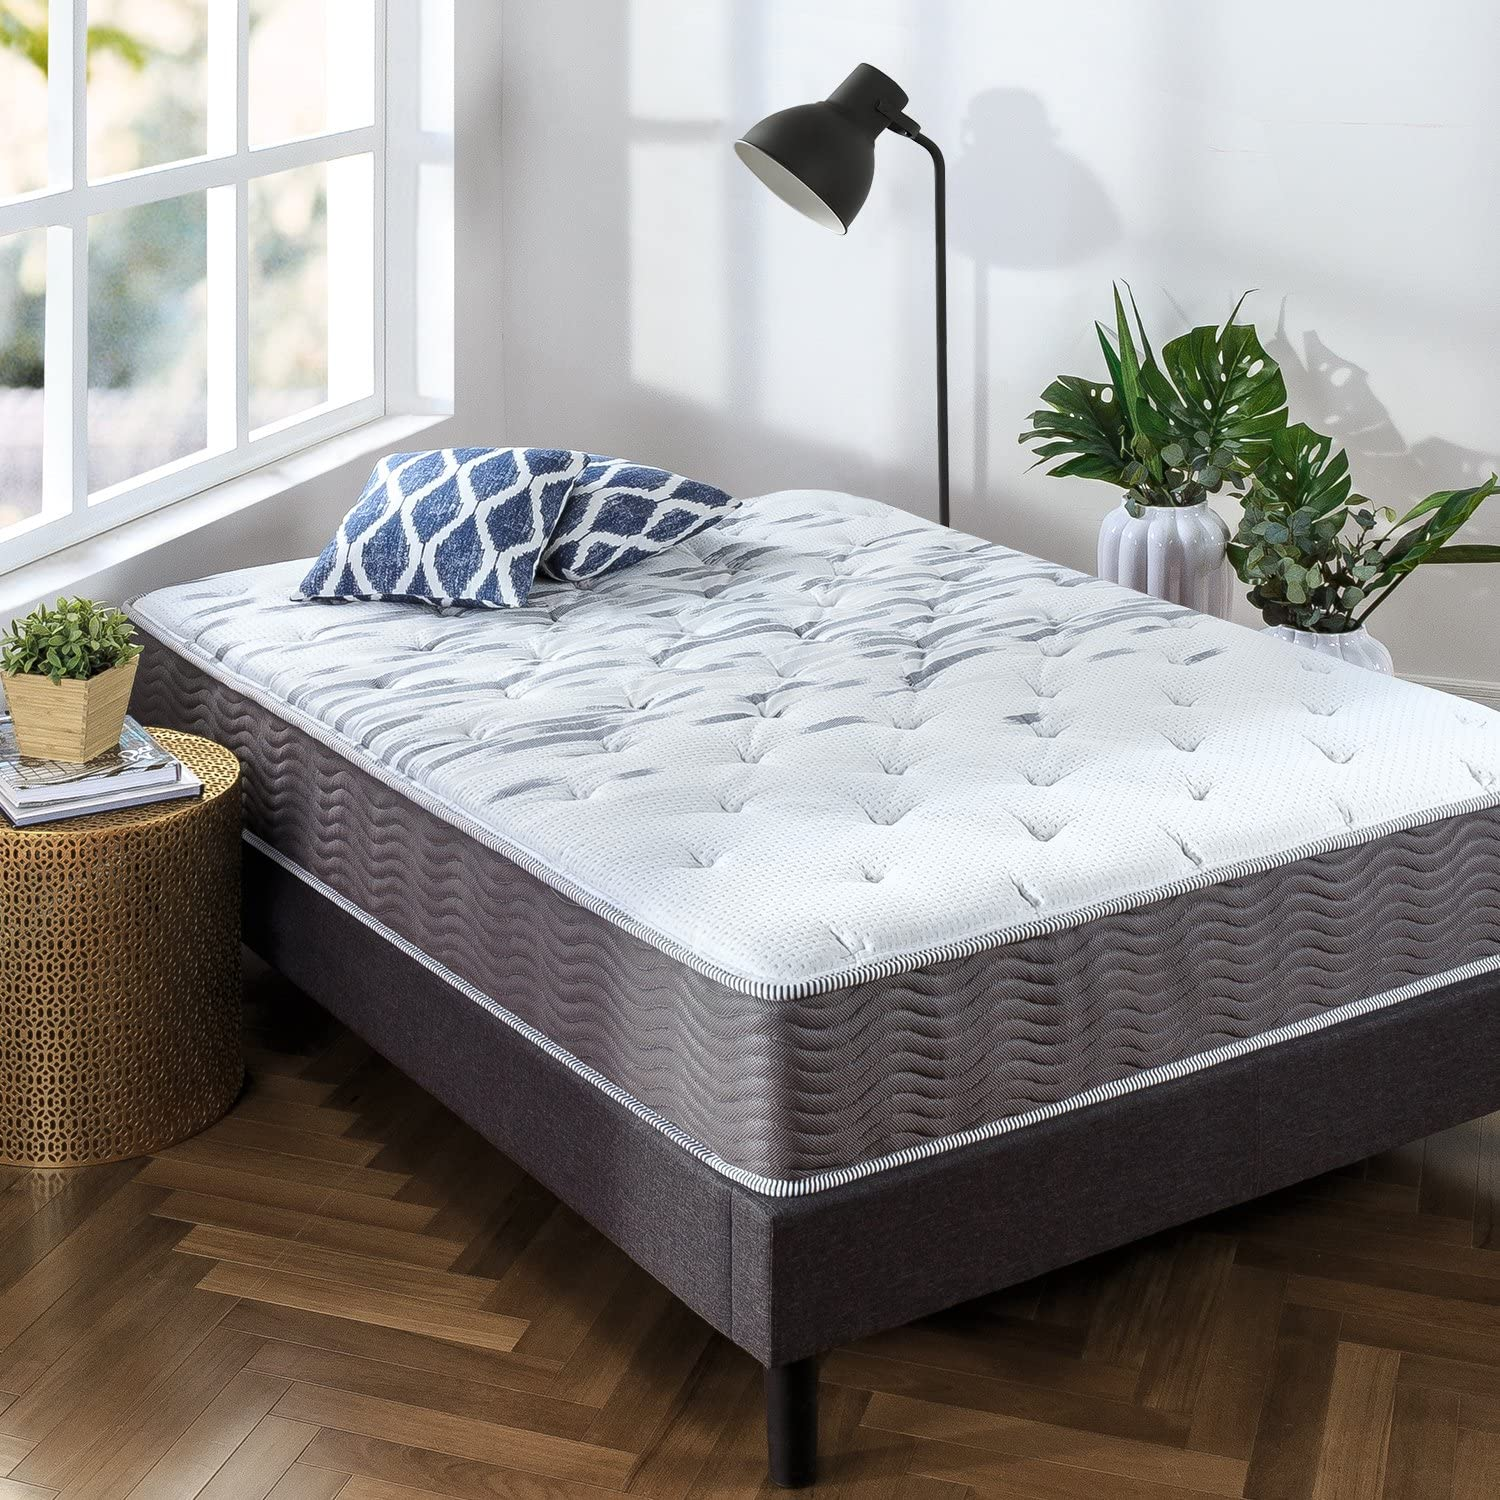 Extra Firm Pocket Spring Hybrid Mattress in Twin Size